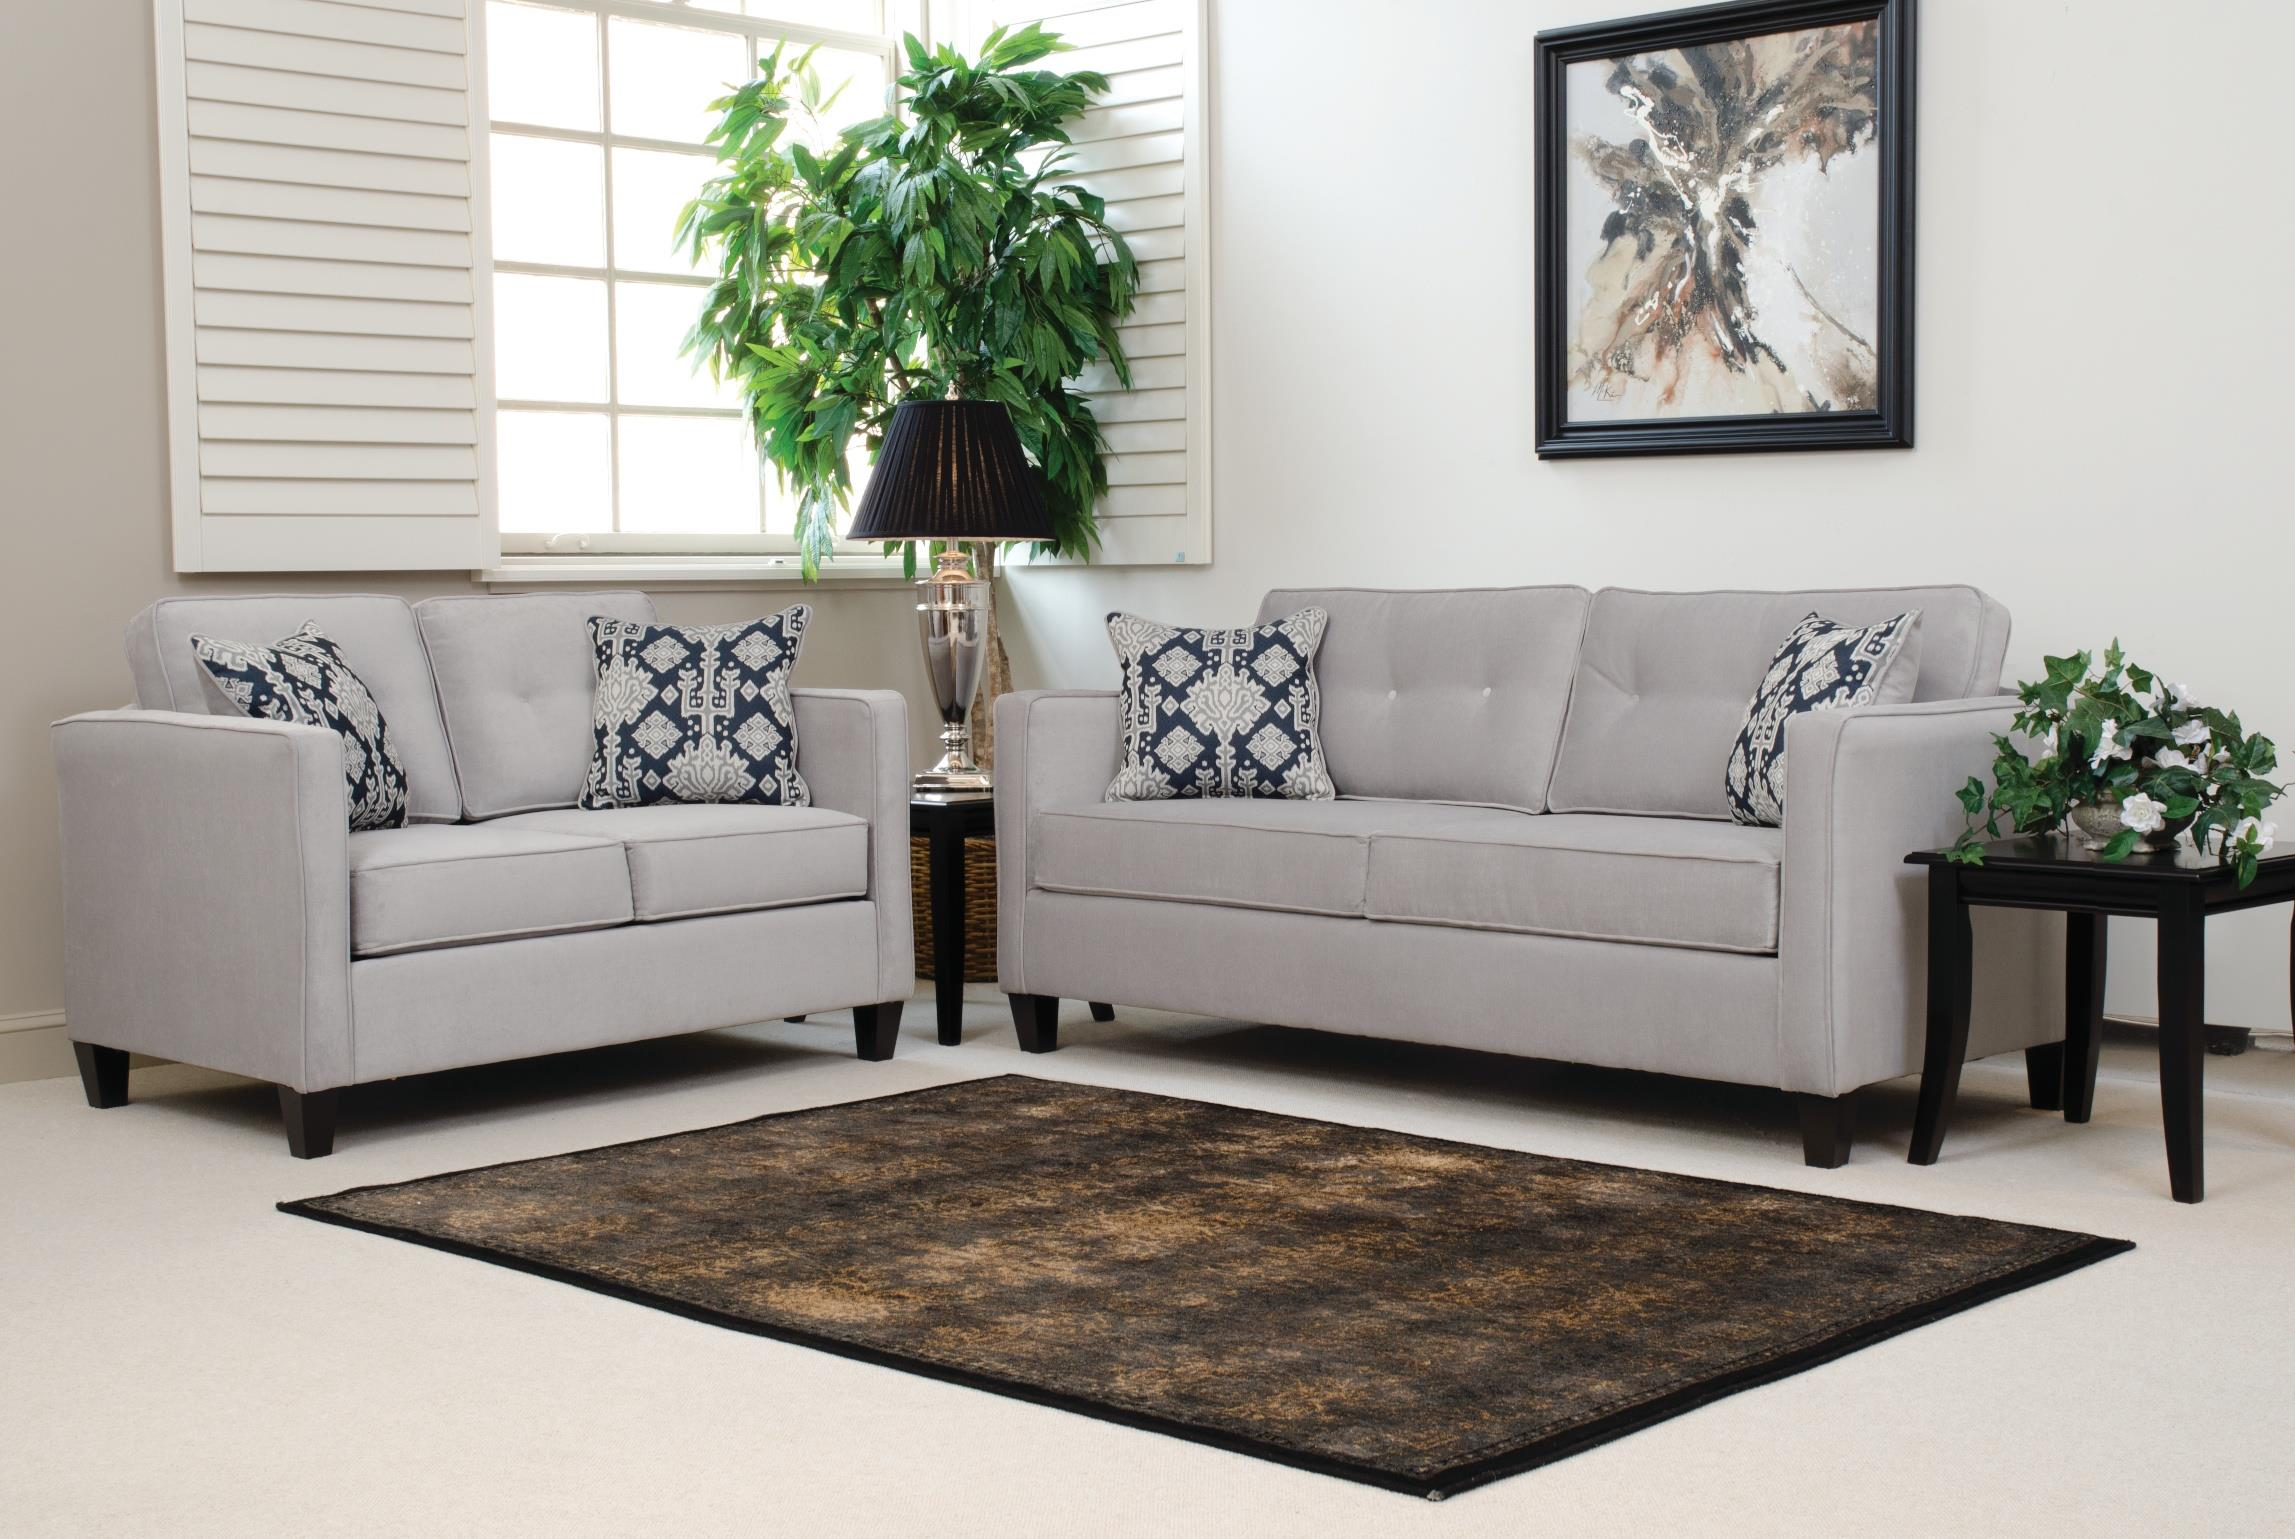 Serta Upholstery By Hughes Furniture 1375 Loveseat With Casual Contemporary  Style   Colderu0027s Furniture And Appliance   Love Seats Part 39